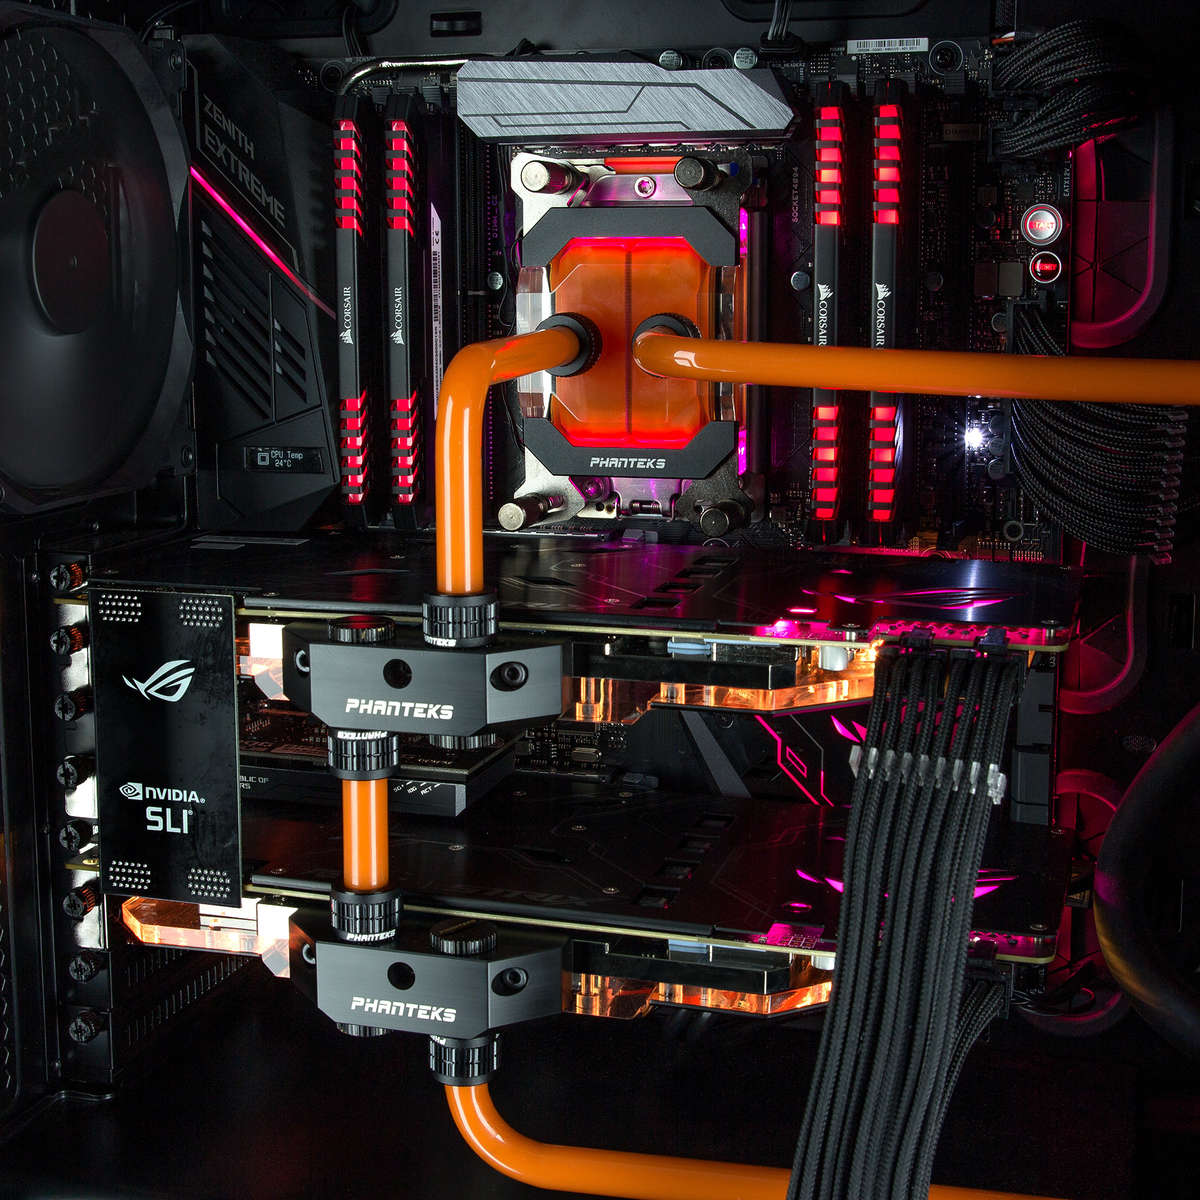 Chillblast Fusion Centauri Ryzen Threadripper Ultimate Gaming PC